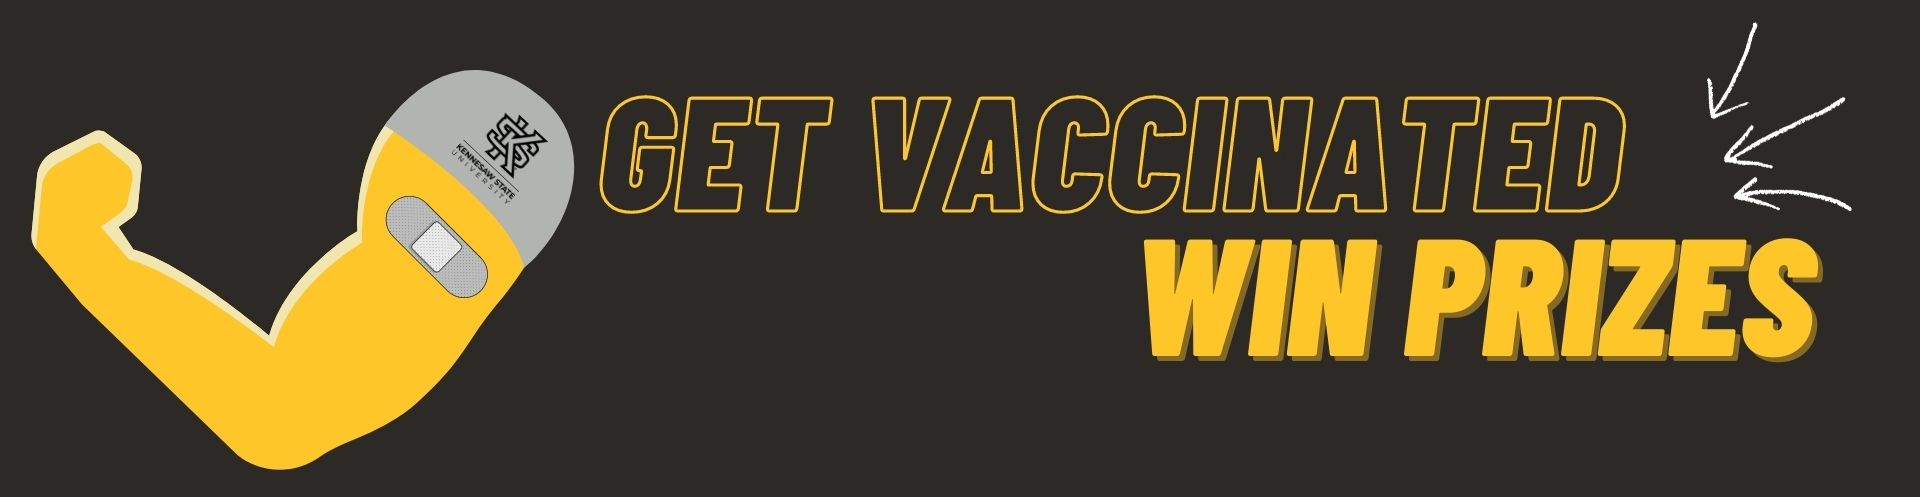 Get Vaccinated - Win Prizes